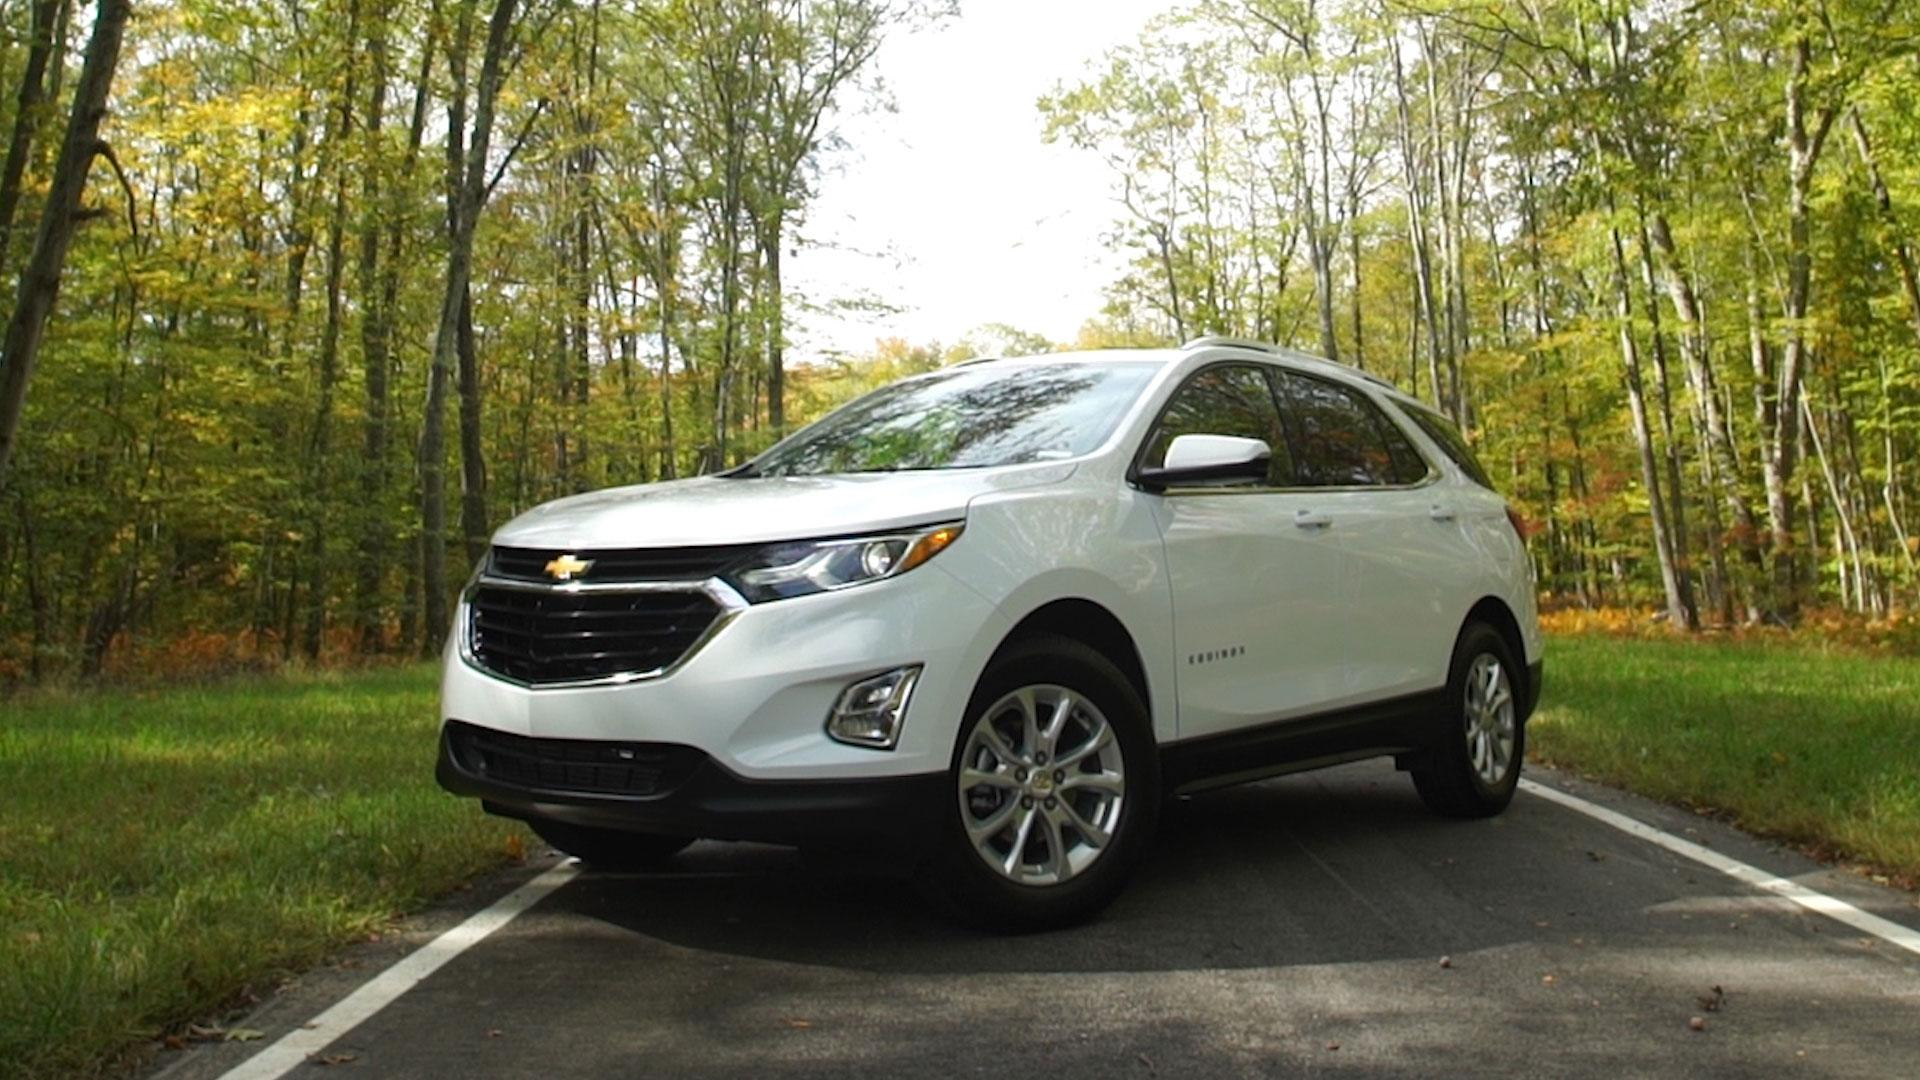 2018 chevrolet trax. Delighful Chevrolet 2018 Chevrolet Equinox Preview For Chevrolet Trax